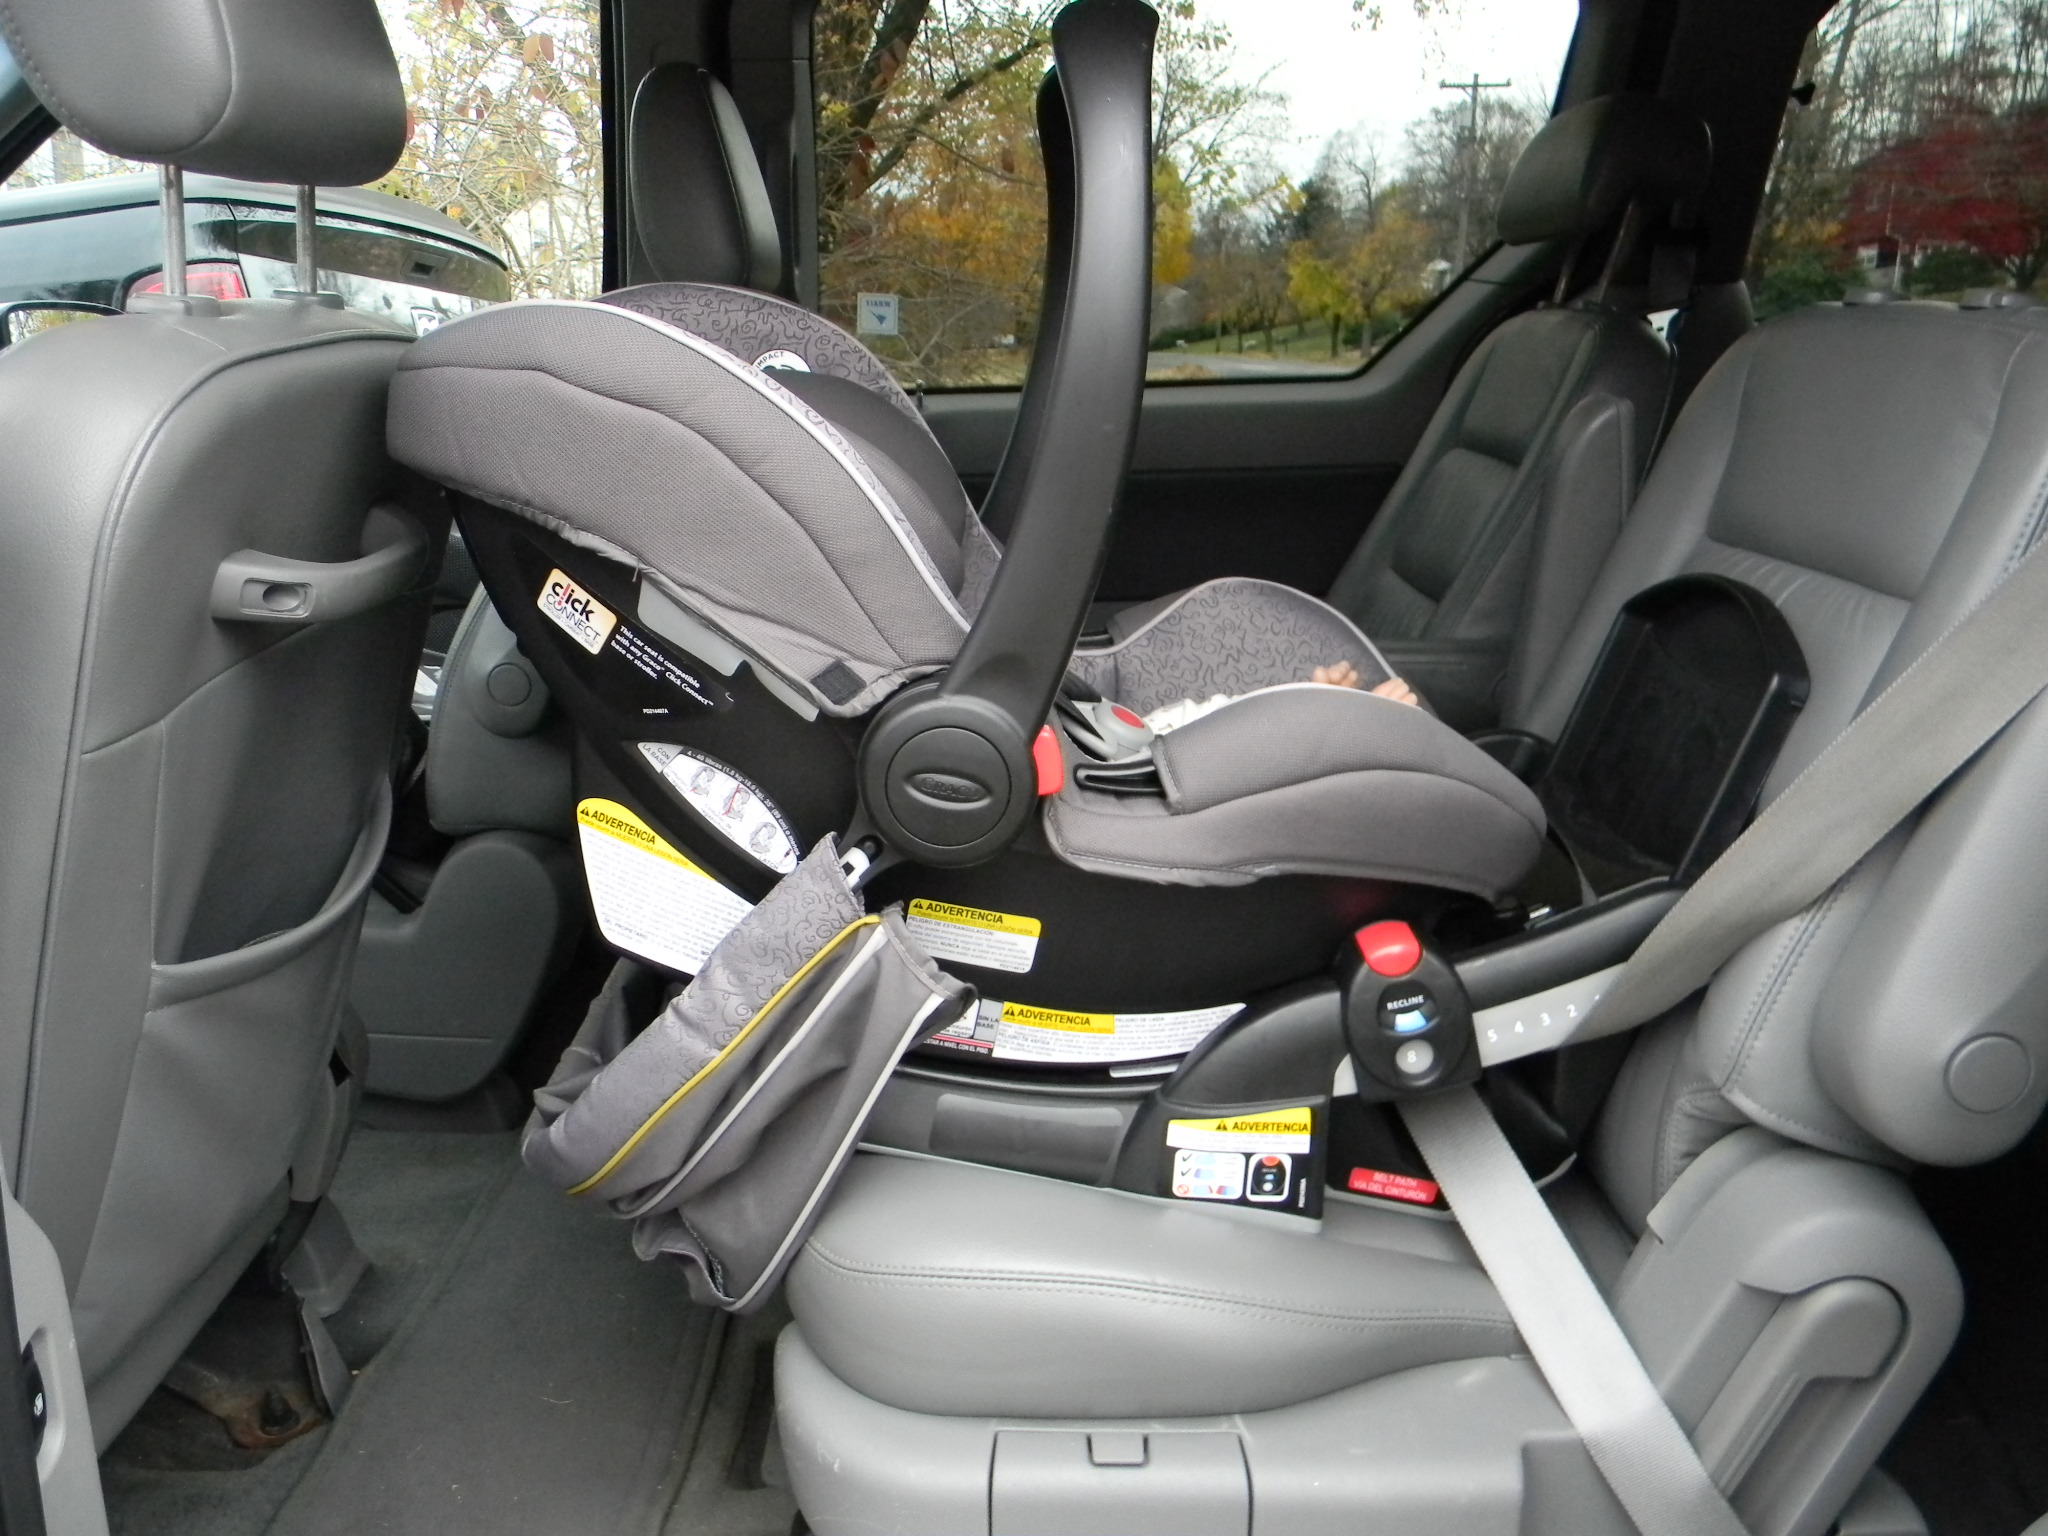 How To Loosen Shoulder Straps On Graco Car Seat